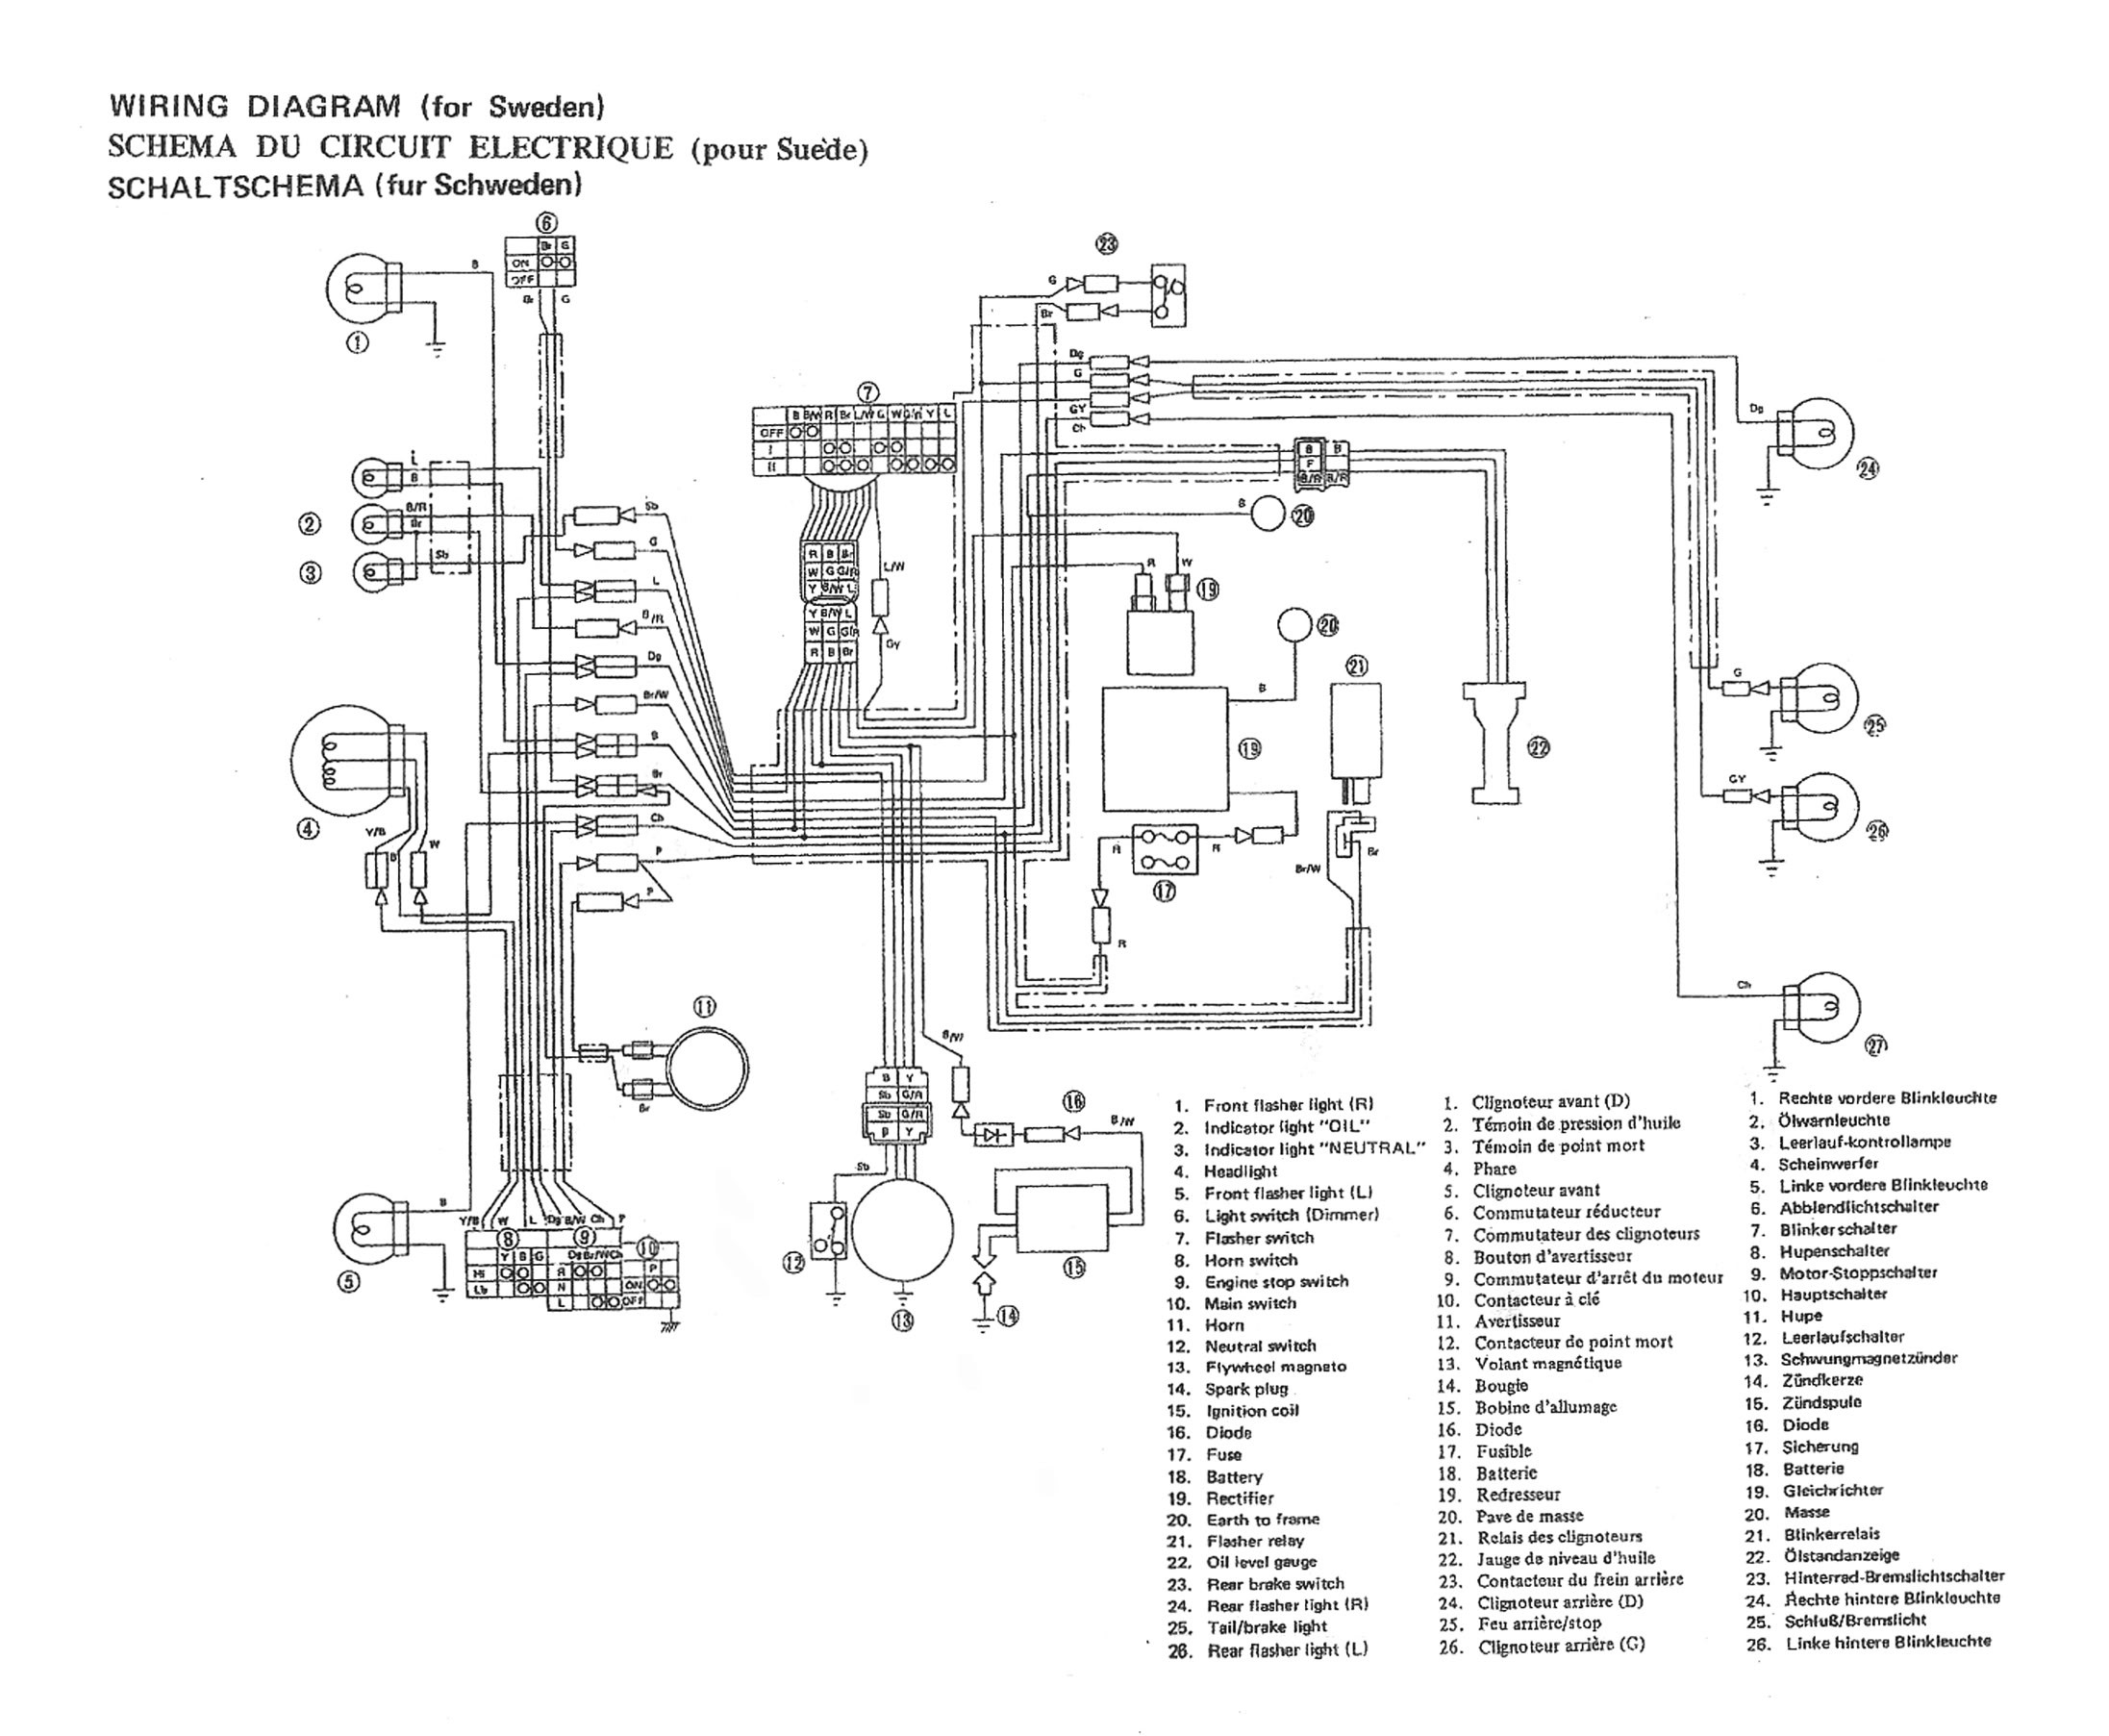 2 Cycle Engine Diagram Stroke Scooter Wiring Diagram Get Free Image About Wiring  Diagram Of 2